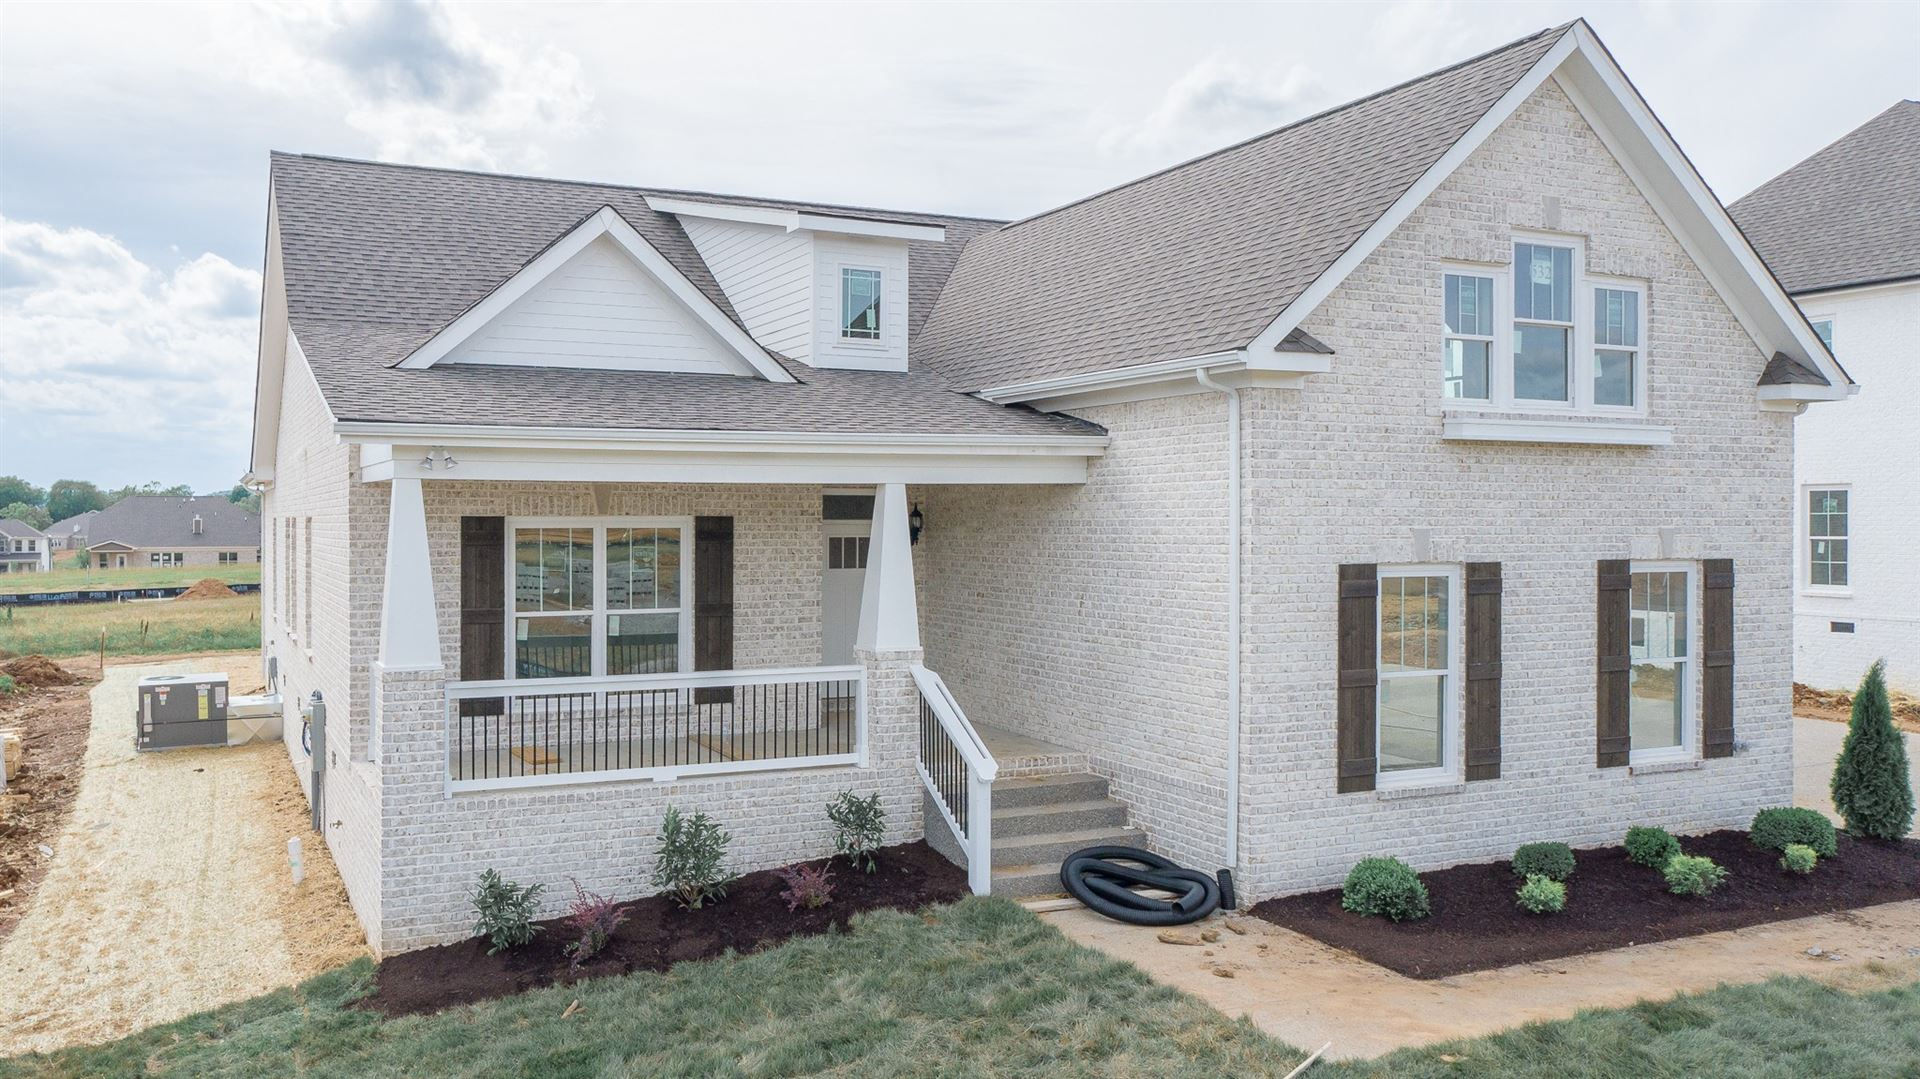 Photo of 9032 Safe Haven Place Lot 532, Spring Hill, TN 37174 (MLS # 2167124)